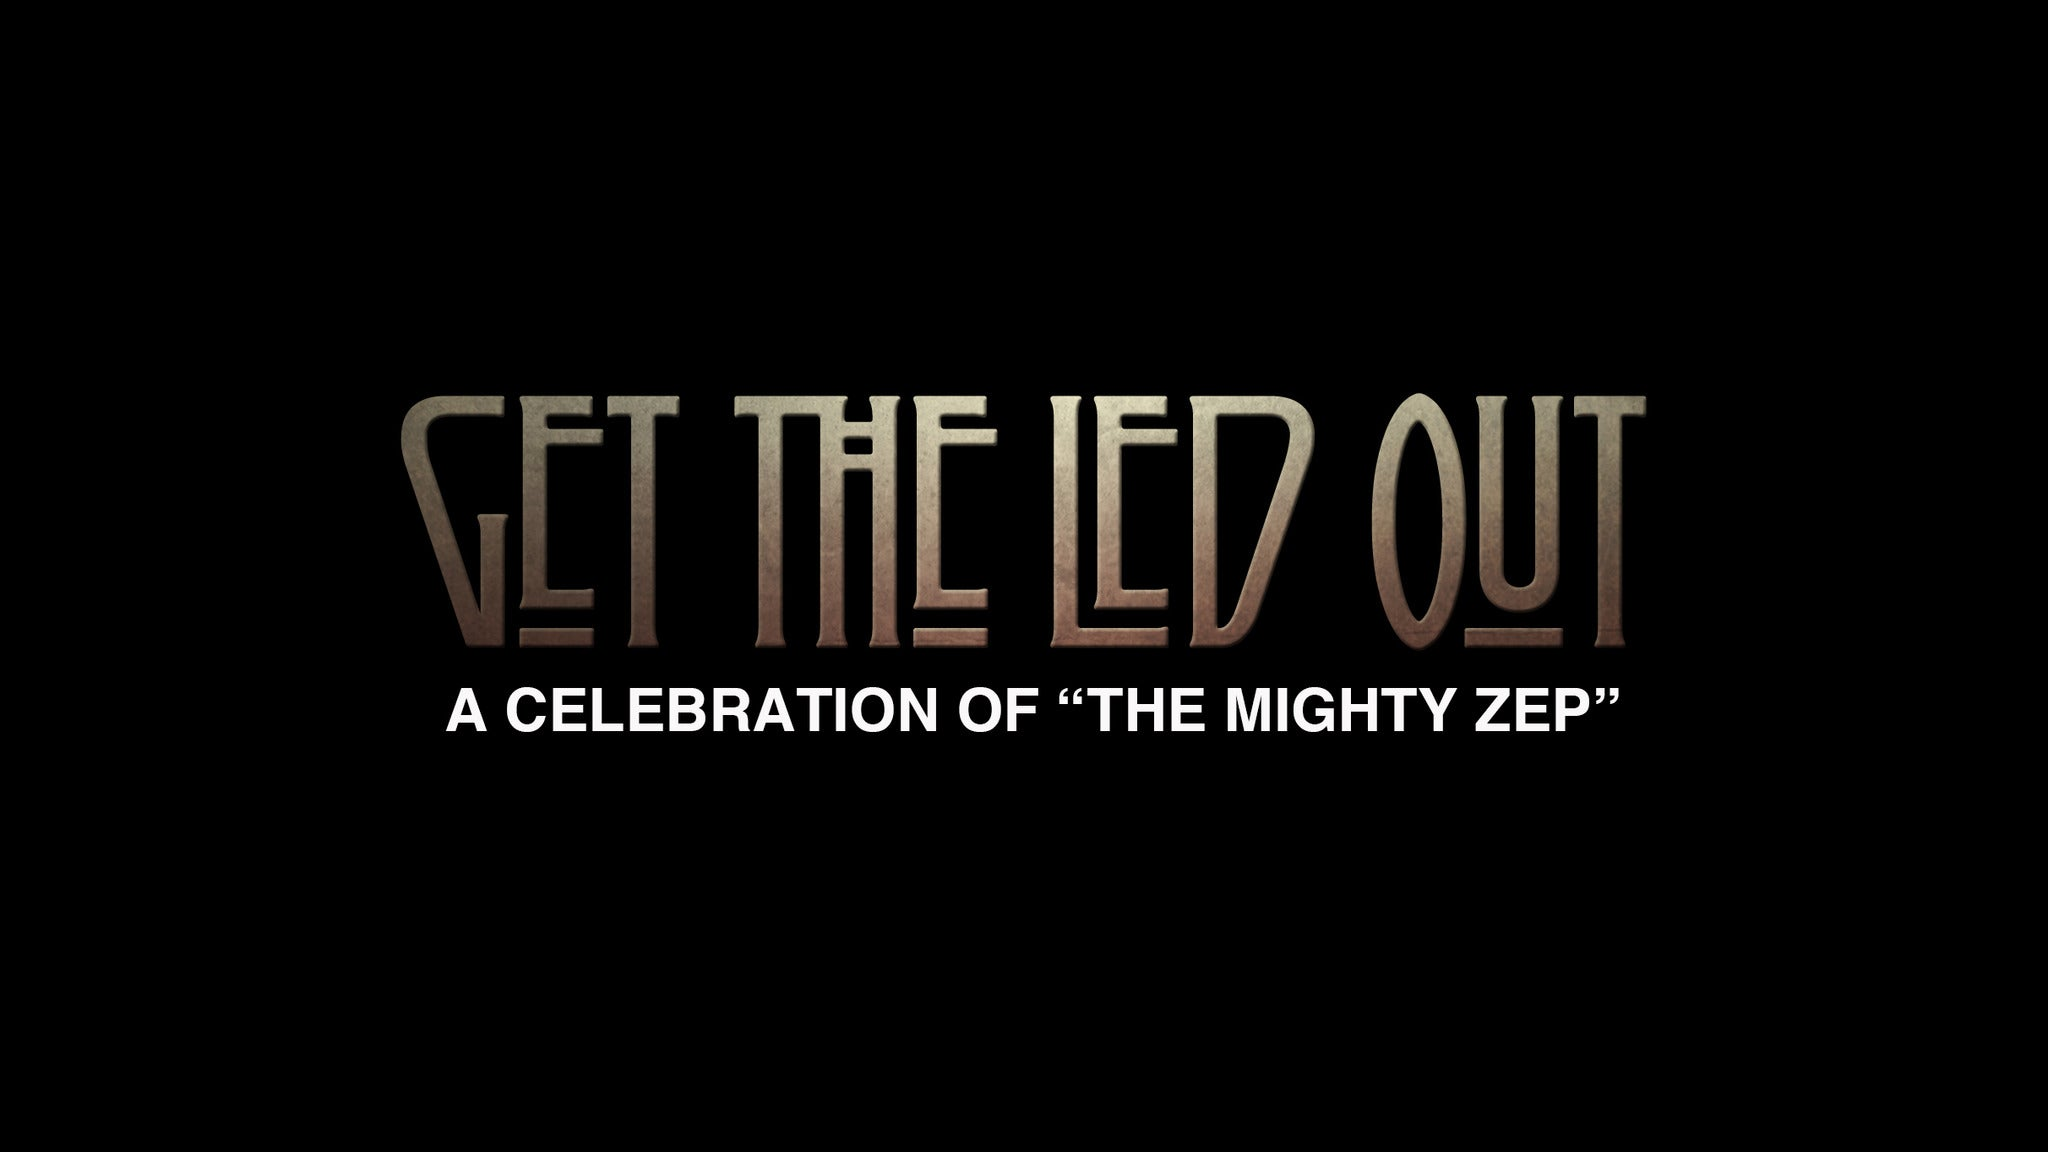 Get the Led Out at Fox Performing Arts Center